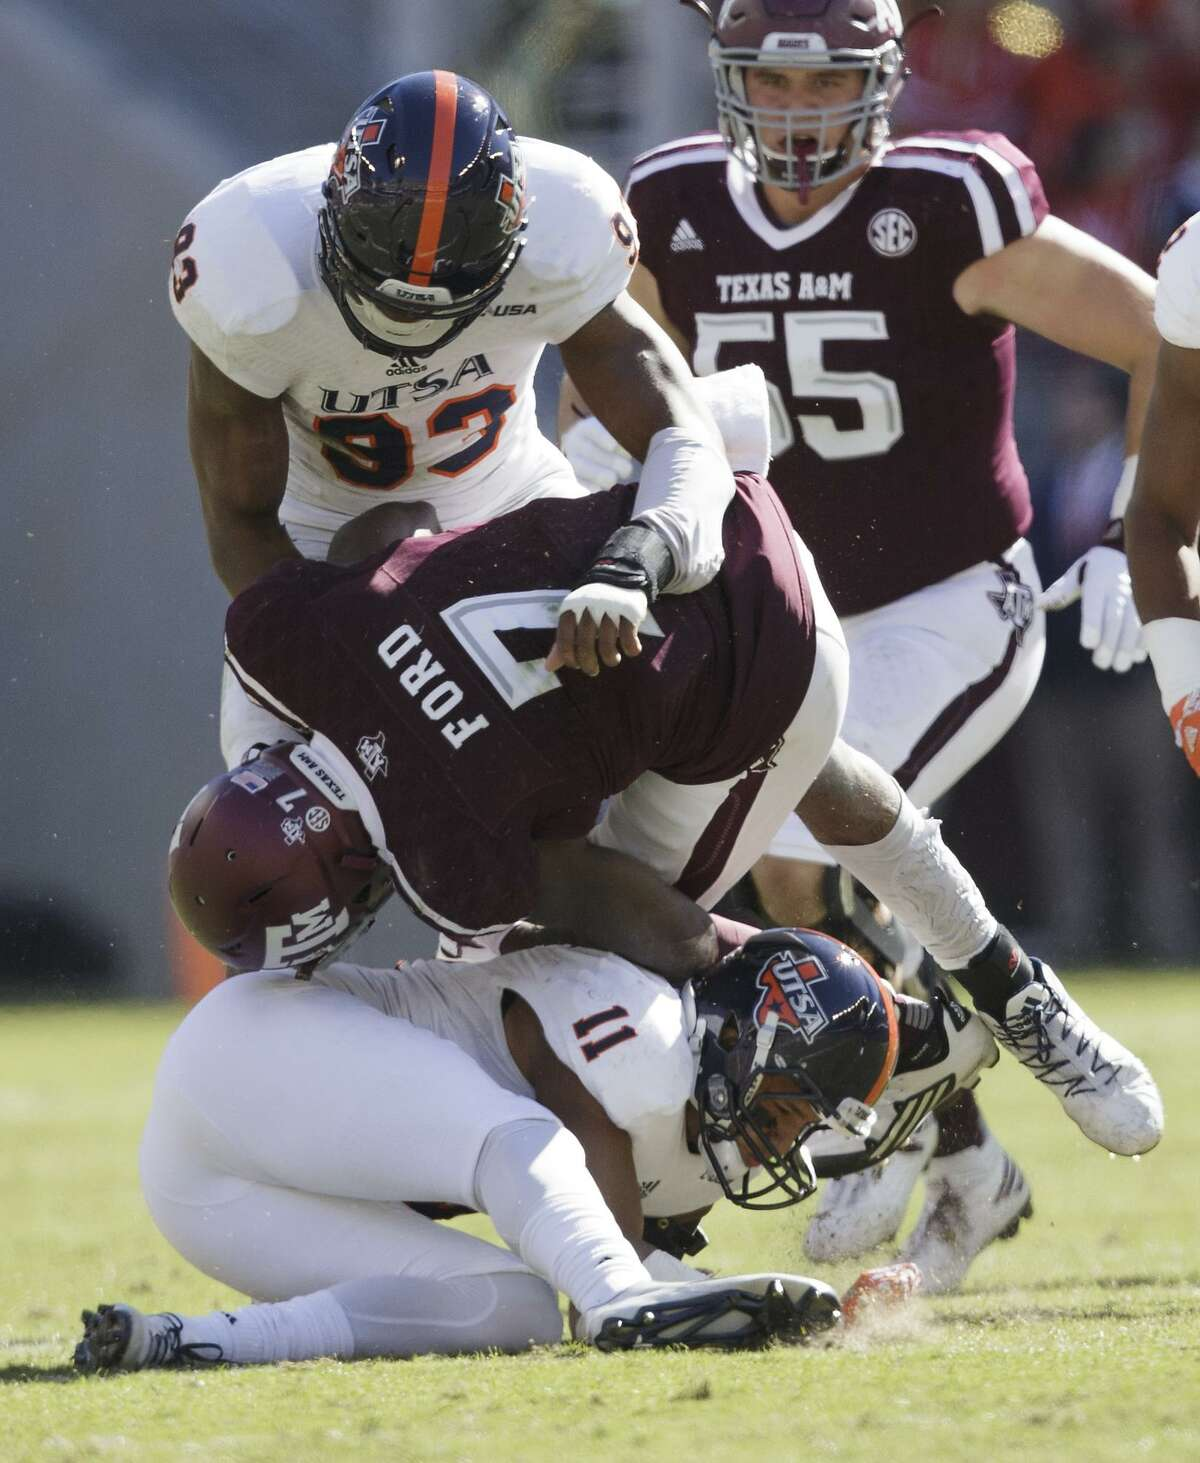 Texas A&M running back Keith Ford (7) is tackled by UTSA safety Nate Gaines (11) and defensive end Marcus Davenport (93) during the first quarter on Nov. 19, 2016, in College Station.